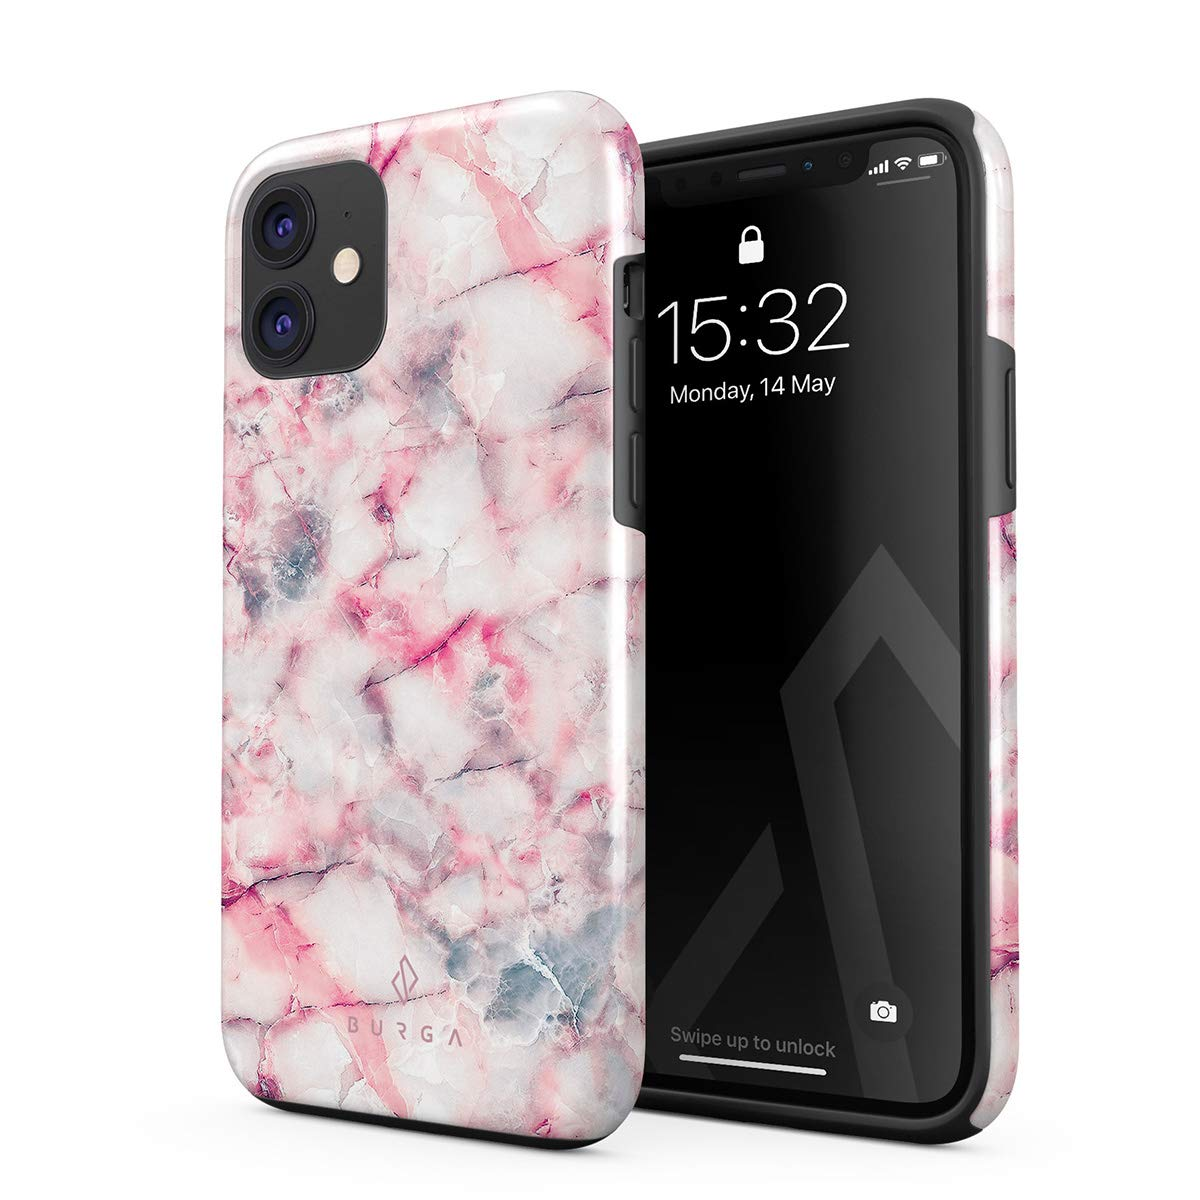 BURGA Phone Case Compatible with iPhone 11 - Raspberry Jam Pink Candy Marble Cute Case for Women Heavy Duty Shockproof Dual Layer Hard Shell + Silicone Protective Cover